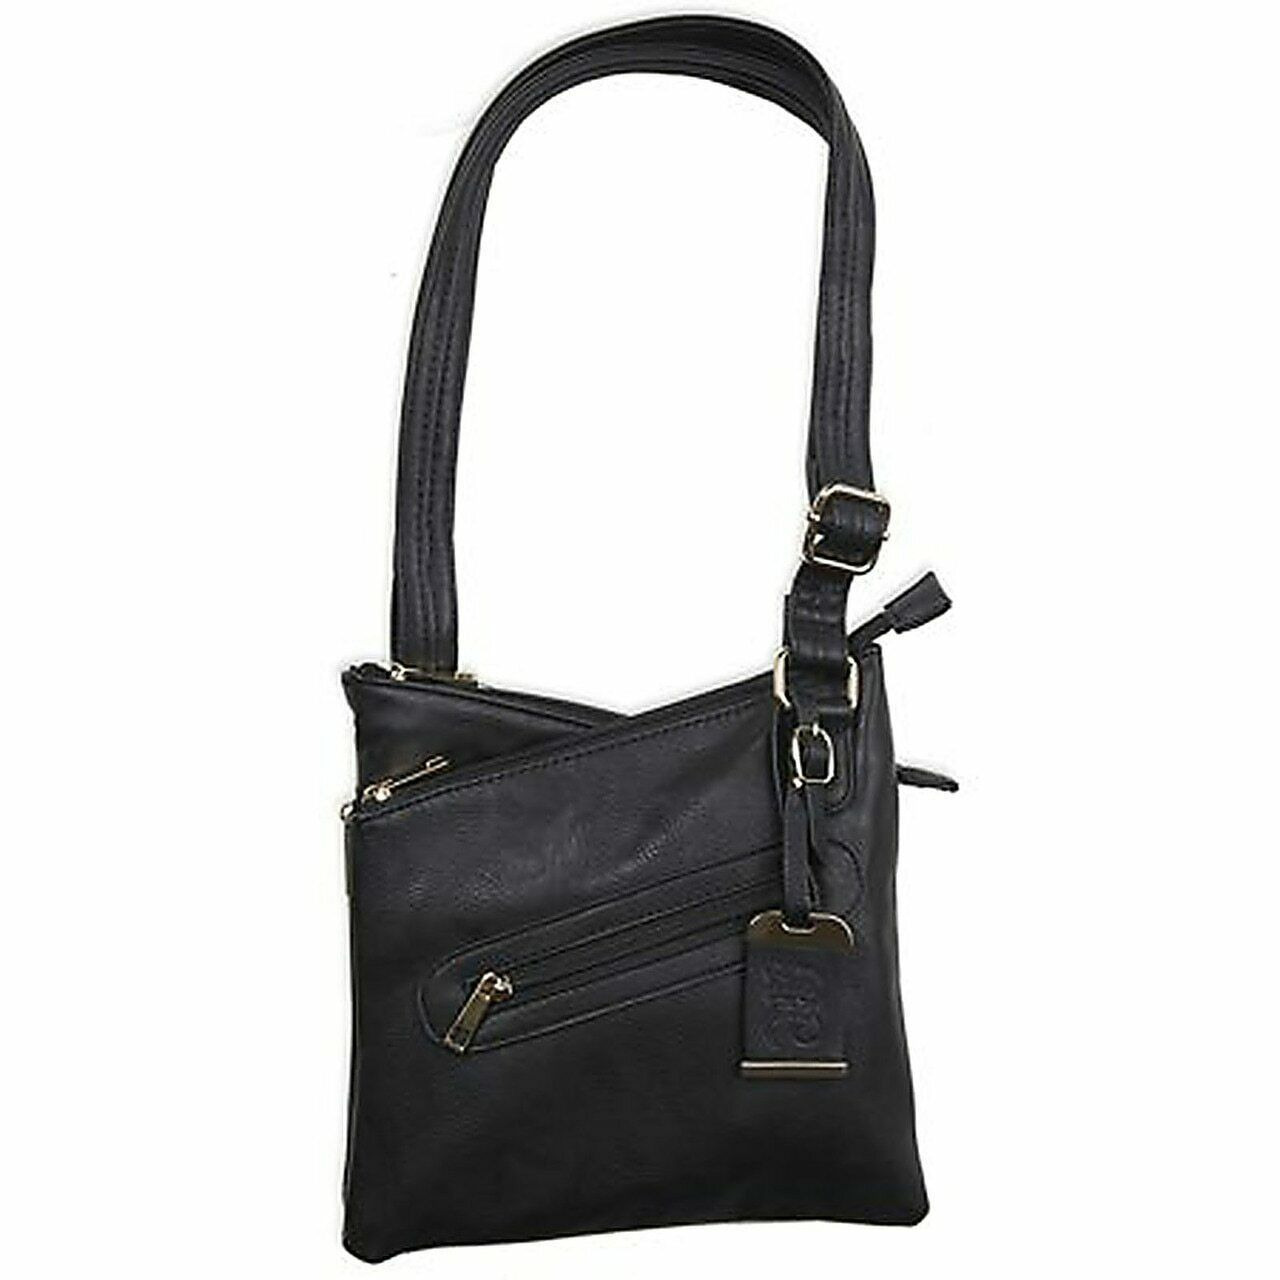 Bulldog Black Crossbody Purse with Concealed Carry Holster BDP-030